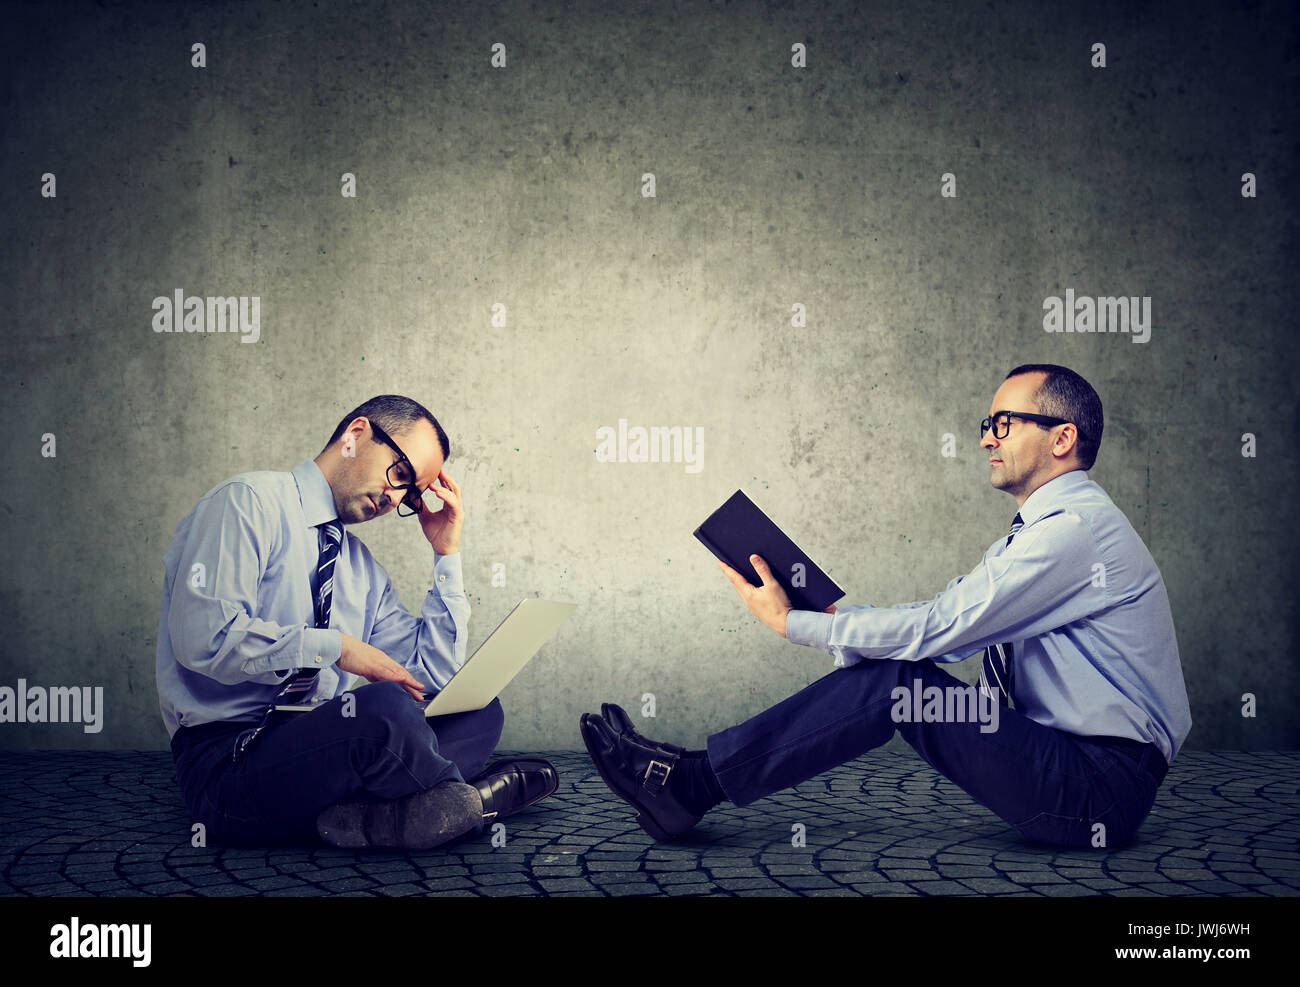 Computer versus book. Two men sitting on a floor one reading a book another working on laptop - Stock Image